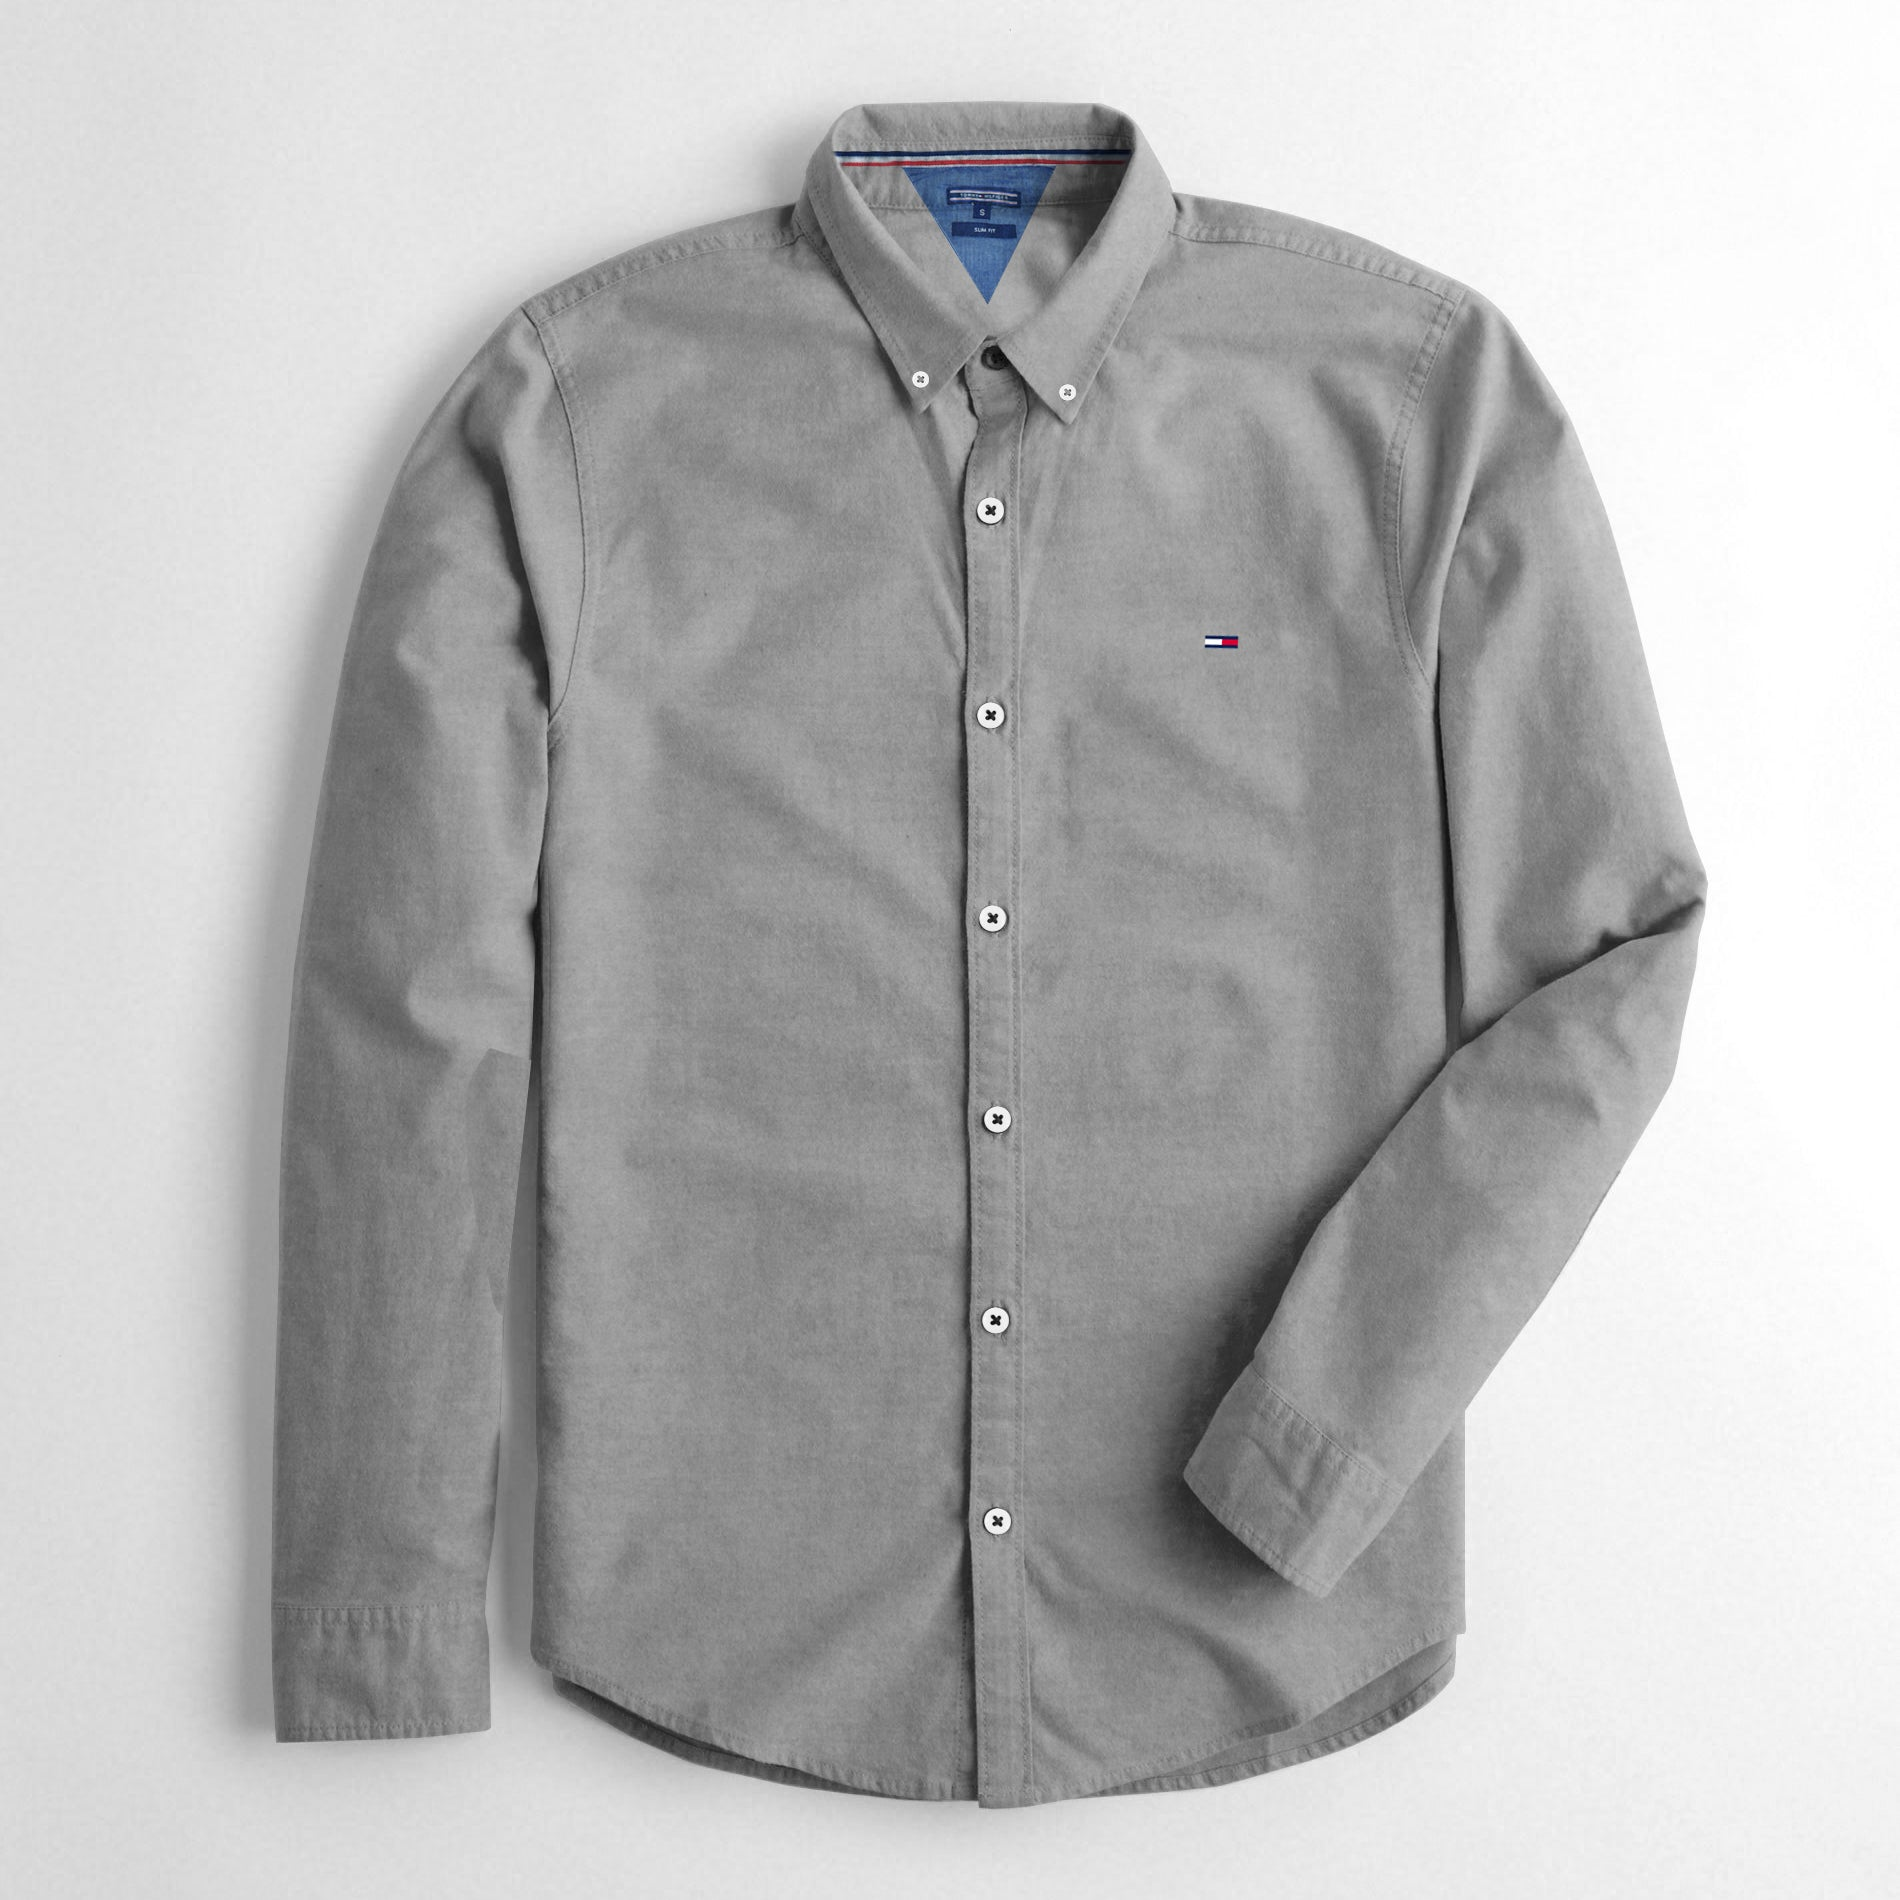 09bfb735772 Tommy Hilfiger Slim Fit Long Sleeve Button Down Casual Shirts For Men- -  BrandsEgo